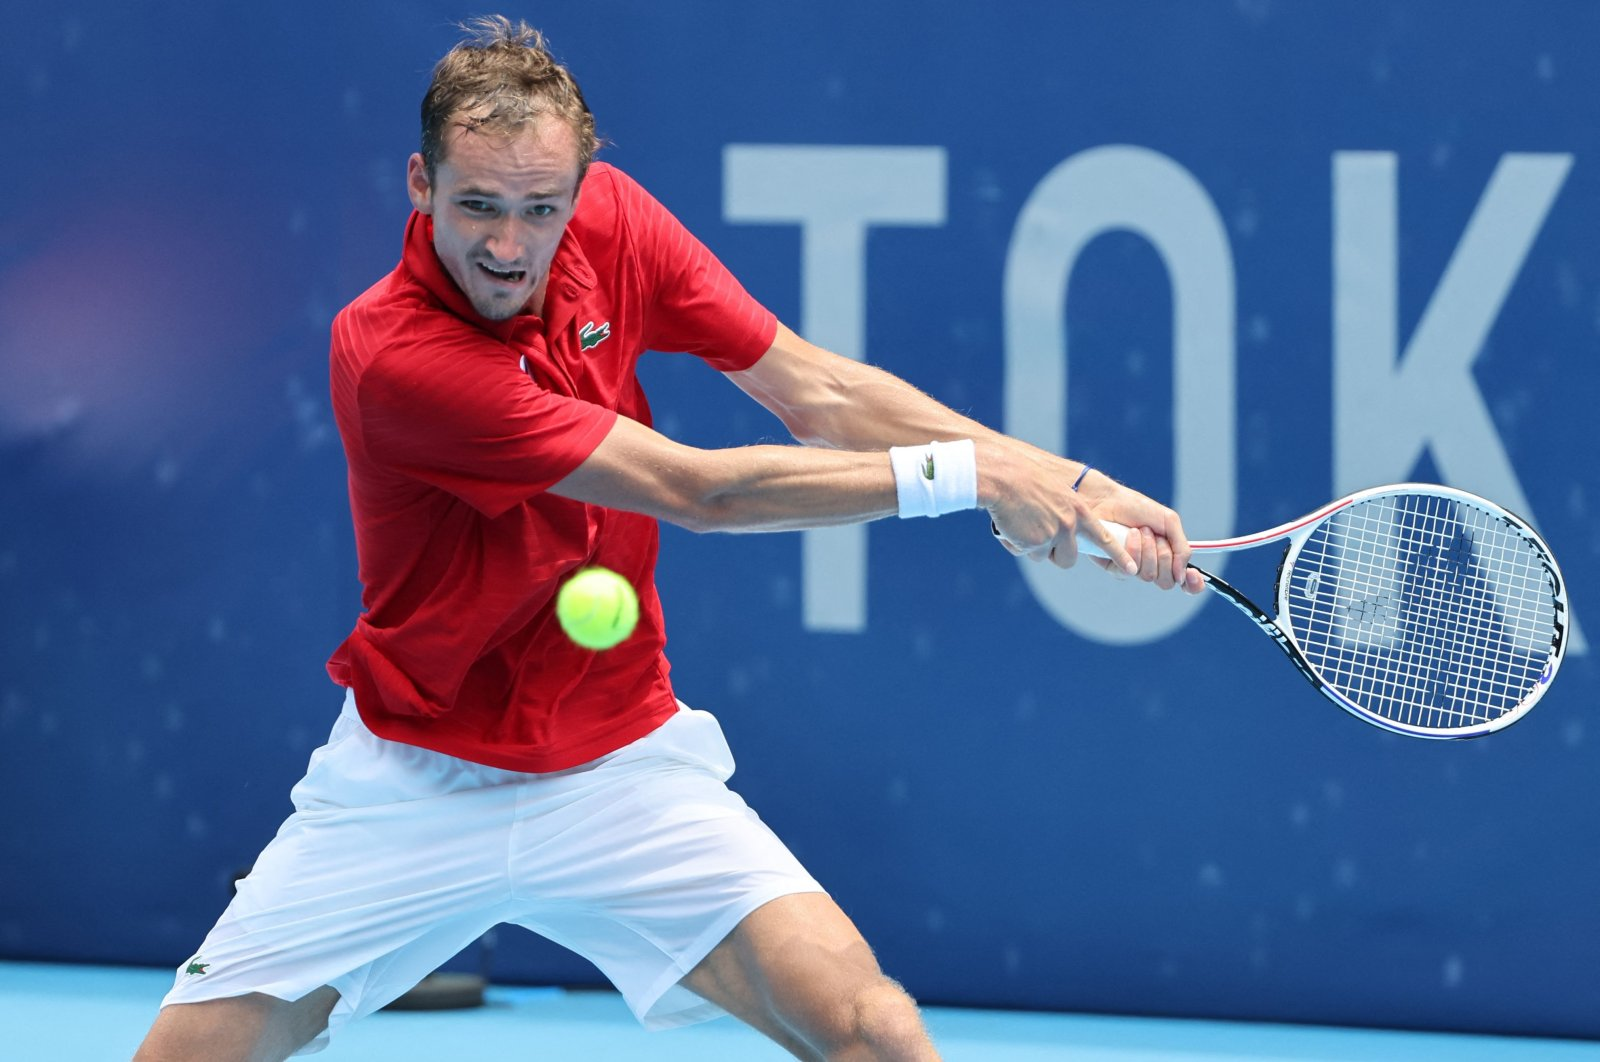 Russia's Daniil Medvedev returns the ball to Italy's Fabio Fognini during their Tokyo 2020 Olympic Games men's singles third round tennis match at the Ariake Tennis Park in Tokyo, Japan, July 28, 2021. (AFP Photo)